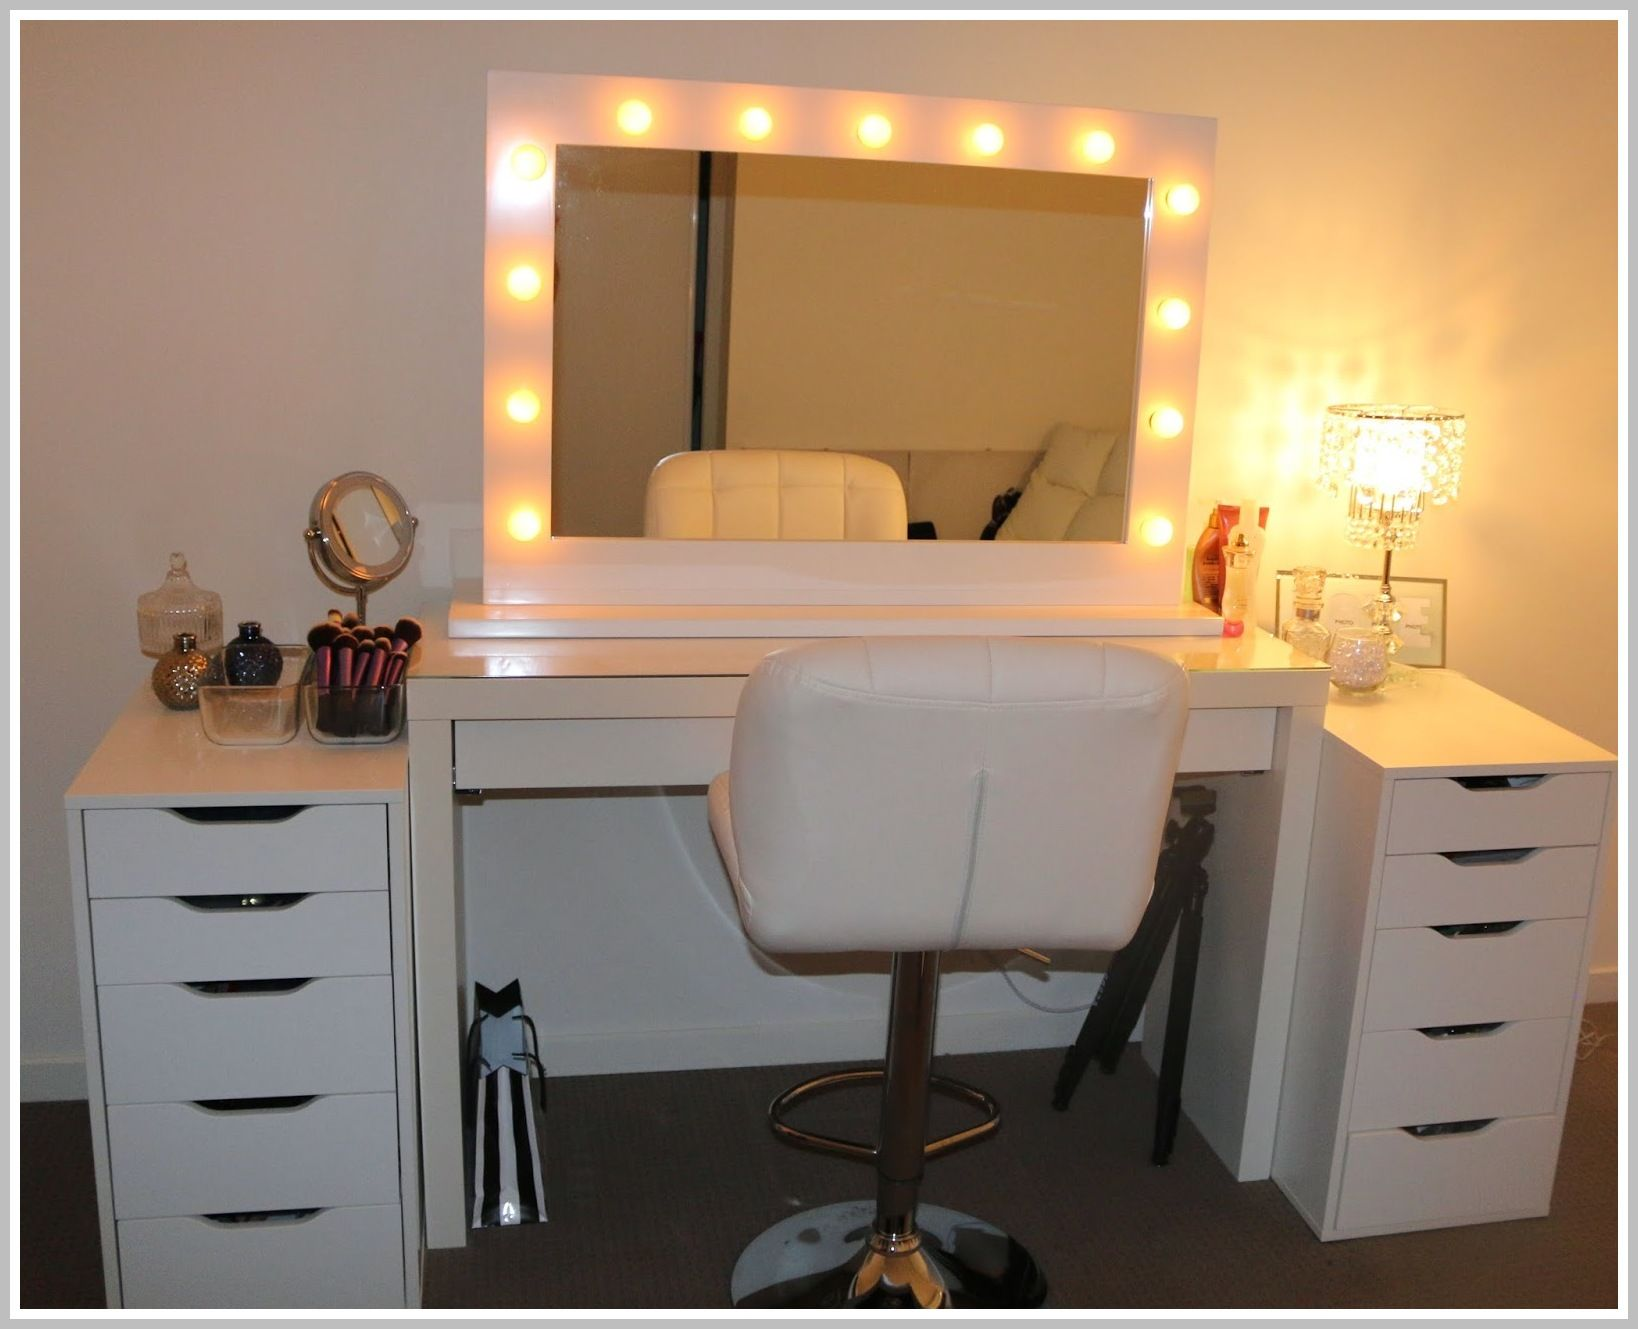 67 Reference Of Vanity Mirror With Lights Dressing Table In 2020 Bedroom Vanity Set Bedroom Makeup Vanity Vanity Table With Lights